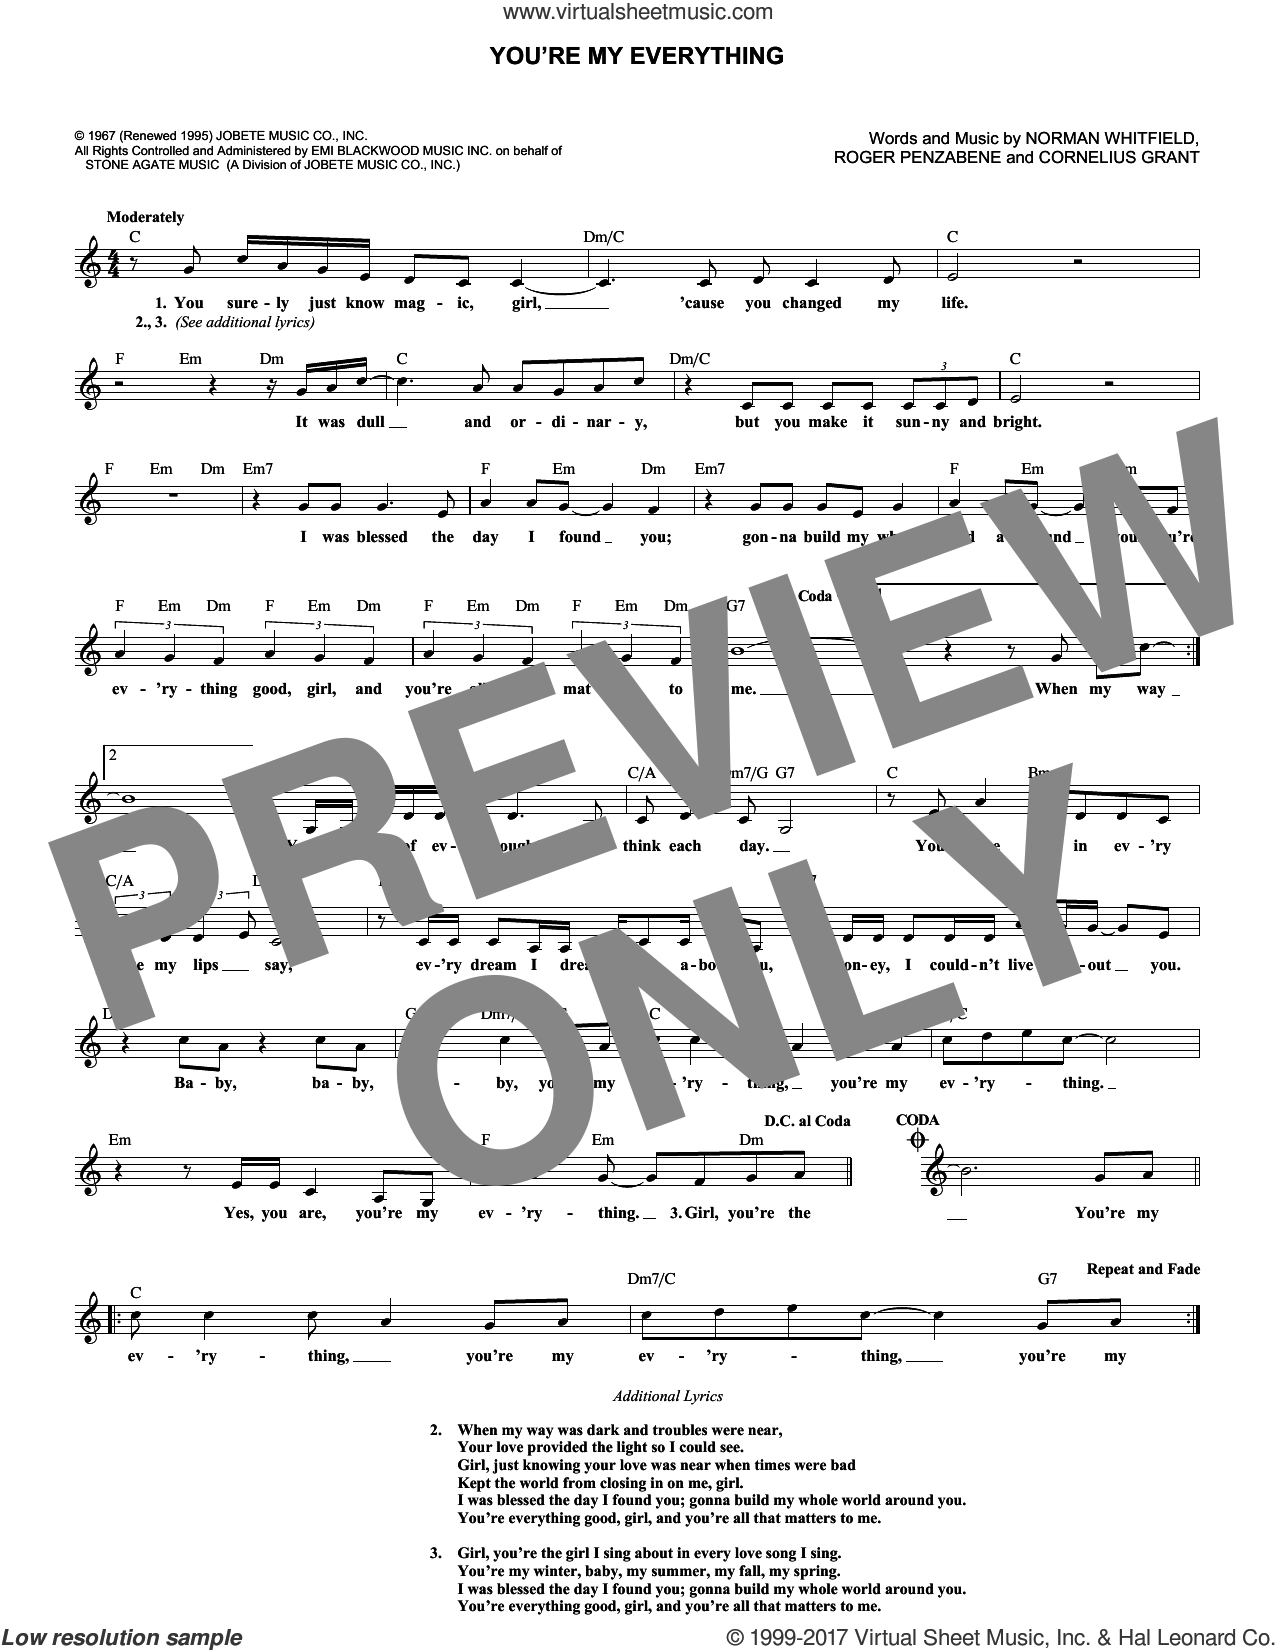 You're My Everything sheet music for voice and other instruments (fake book) by The Temptations, Cornelius Grant, Norman Whitfield and Roger Penzabene, intermediate skill level